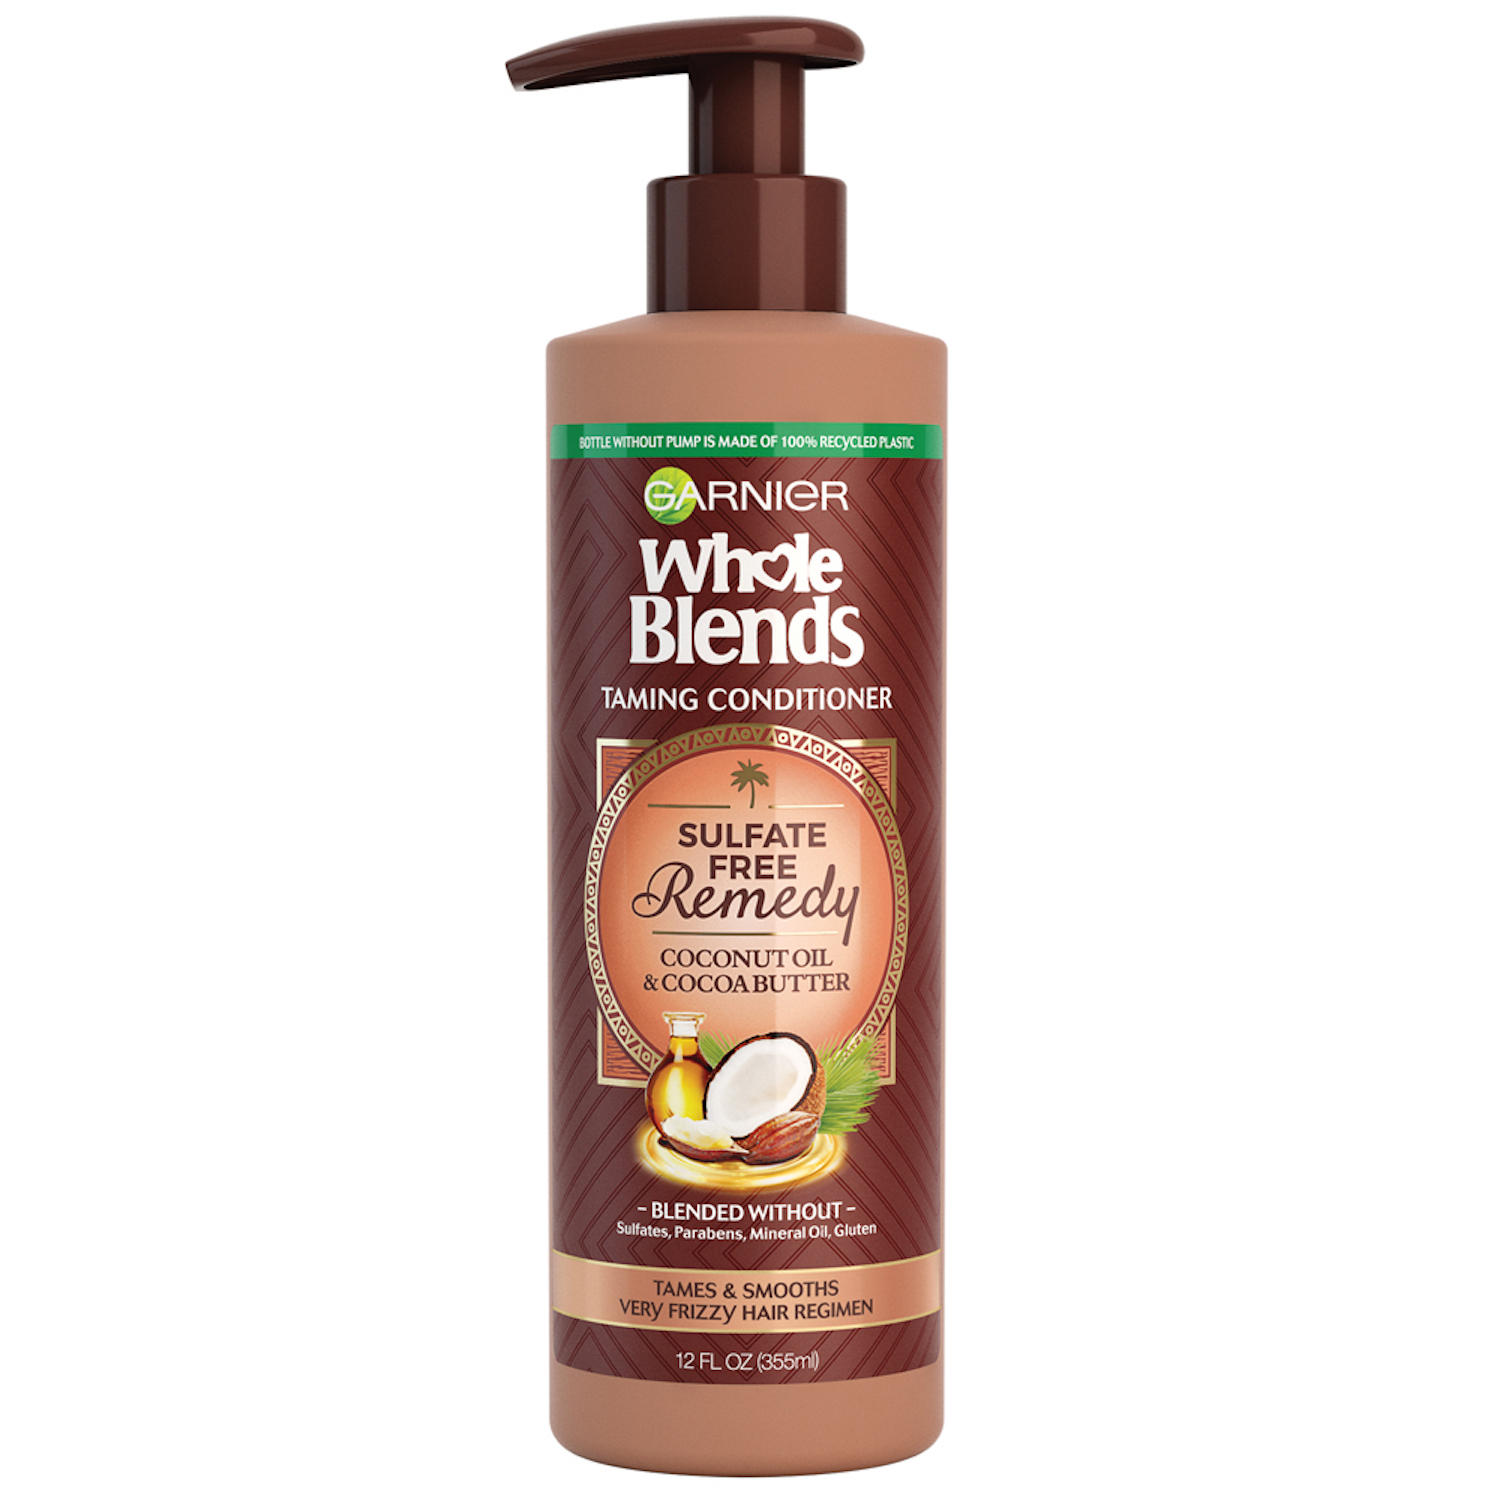 Garnier Whole Blends Sulfate Free Remedy Coconut Oil Conditioner for Frizzy Hair